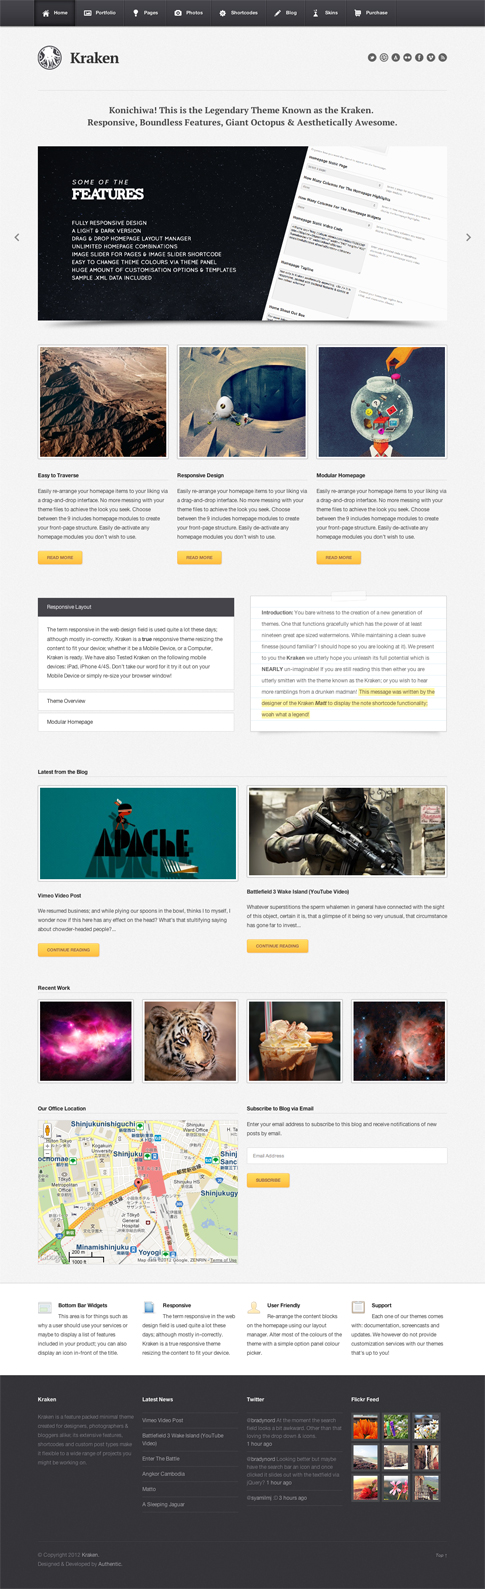 Kraken Premium WordPress Theme